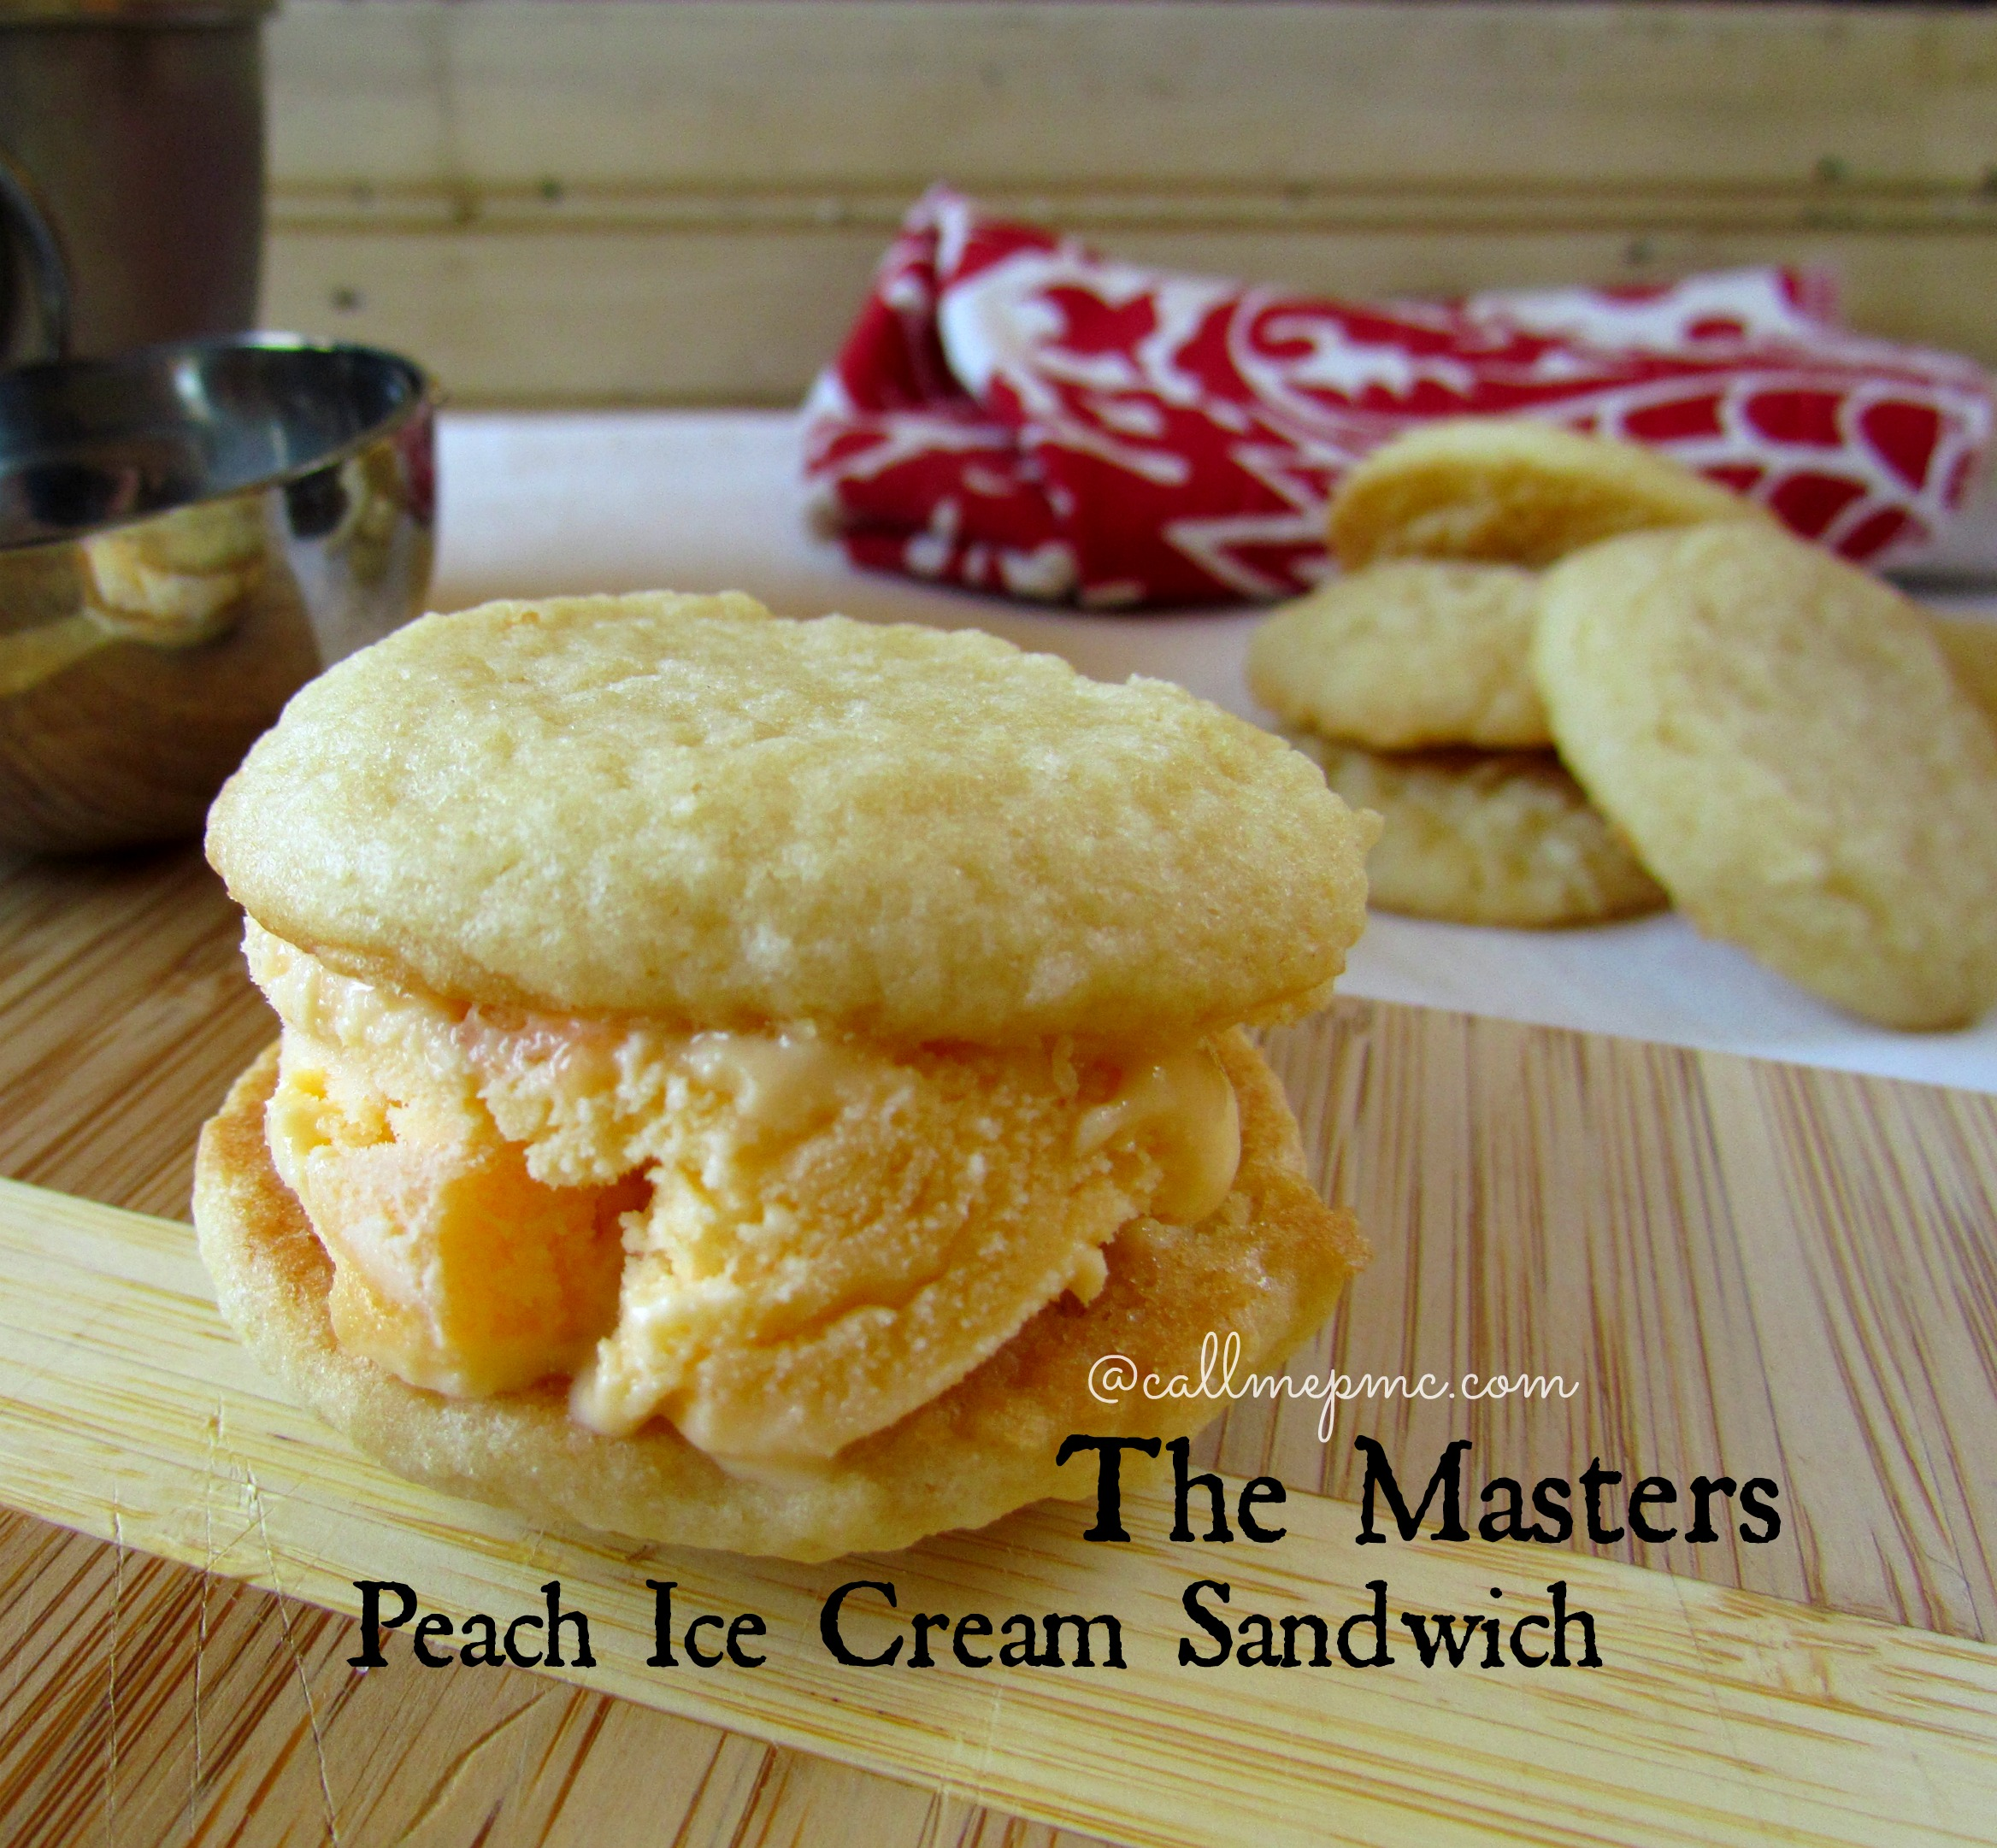 Georgia Peach Ice Cream Sandwich from The Masters » Call Me PMc